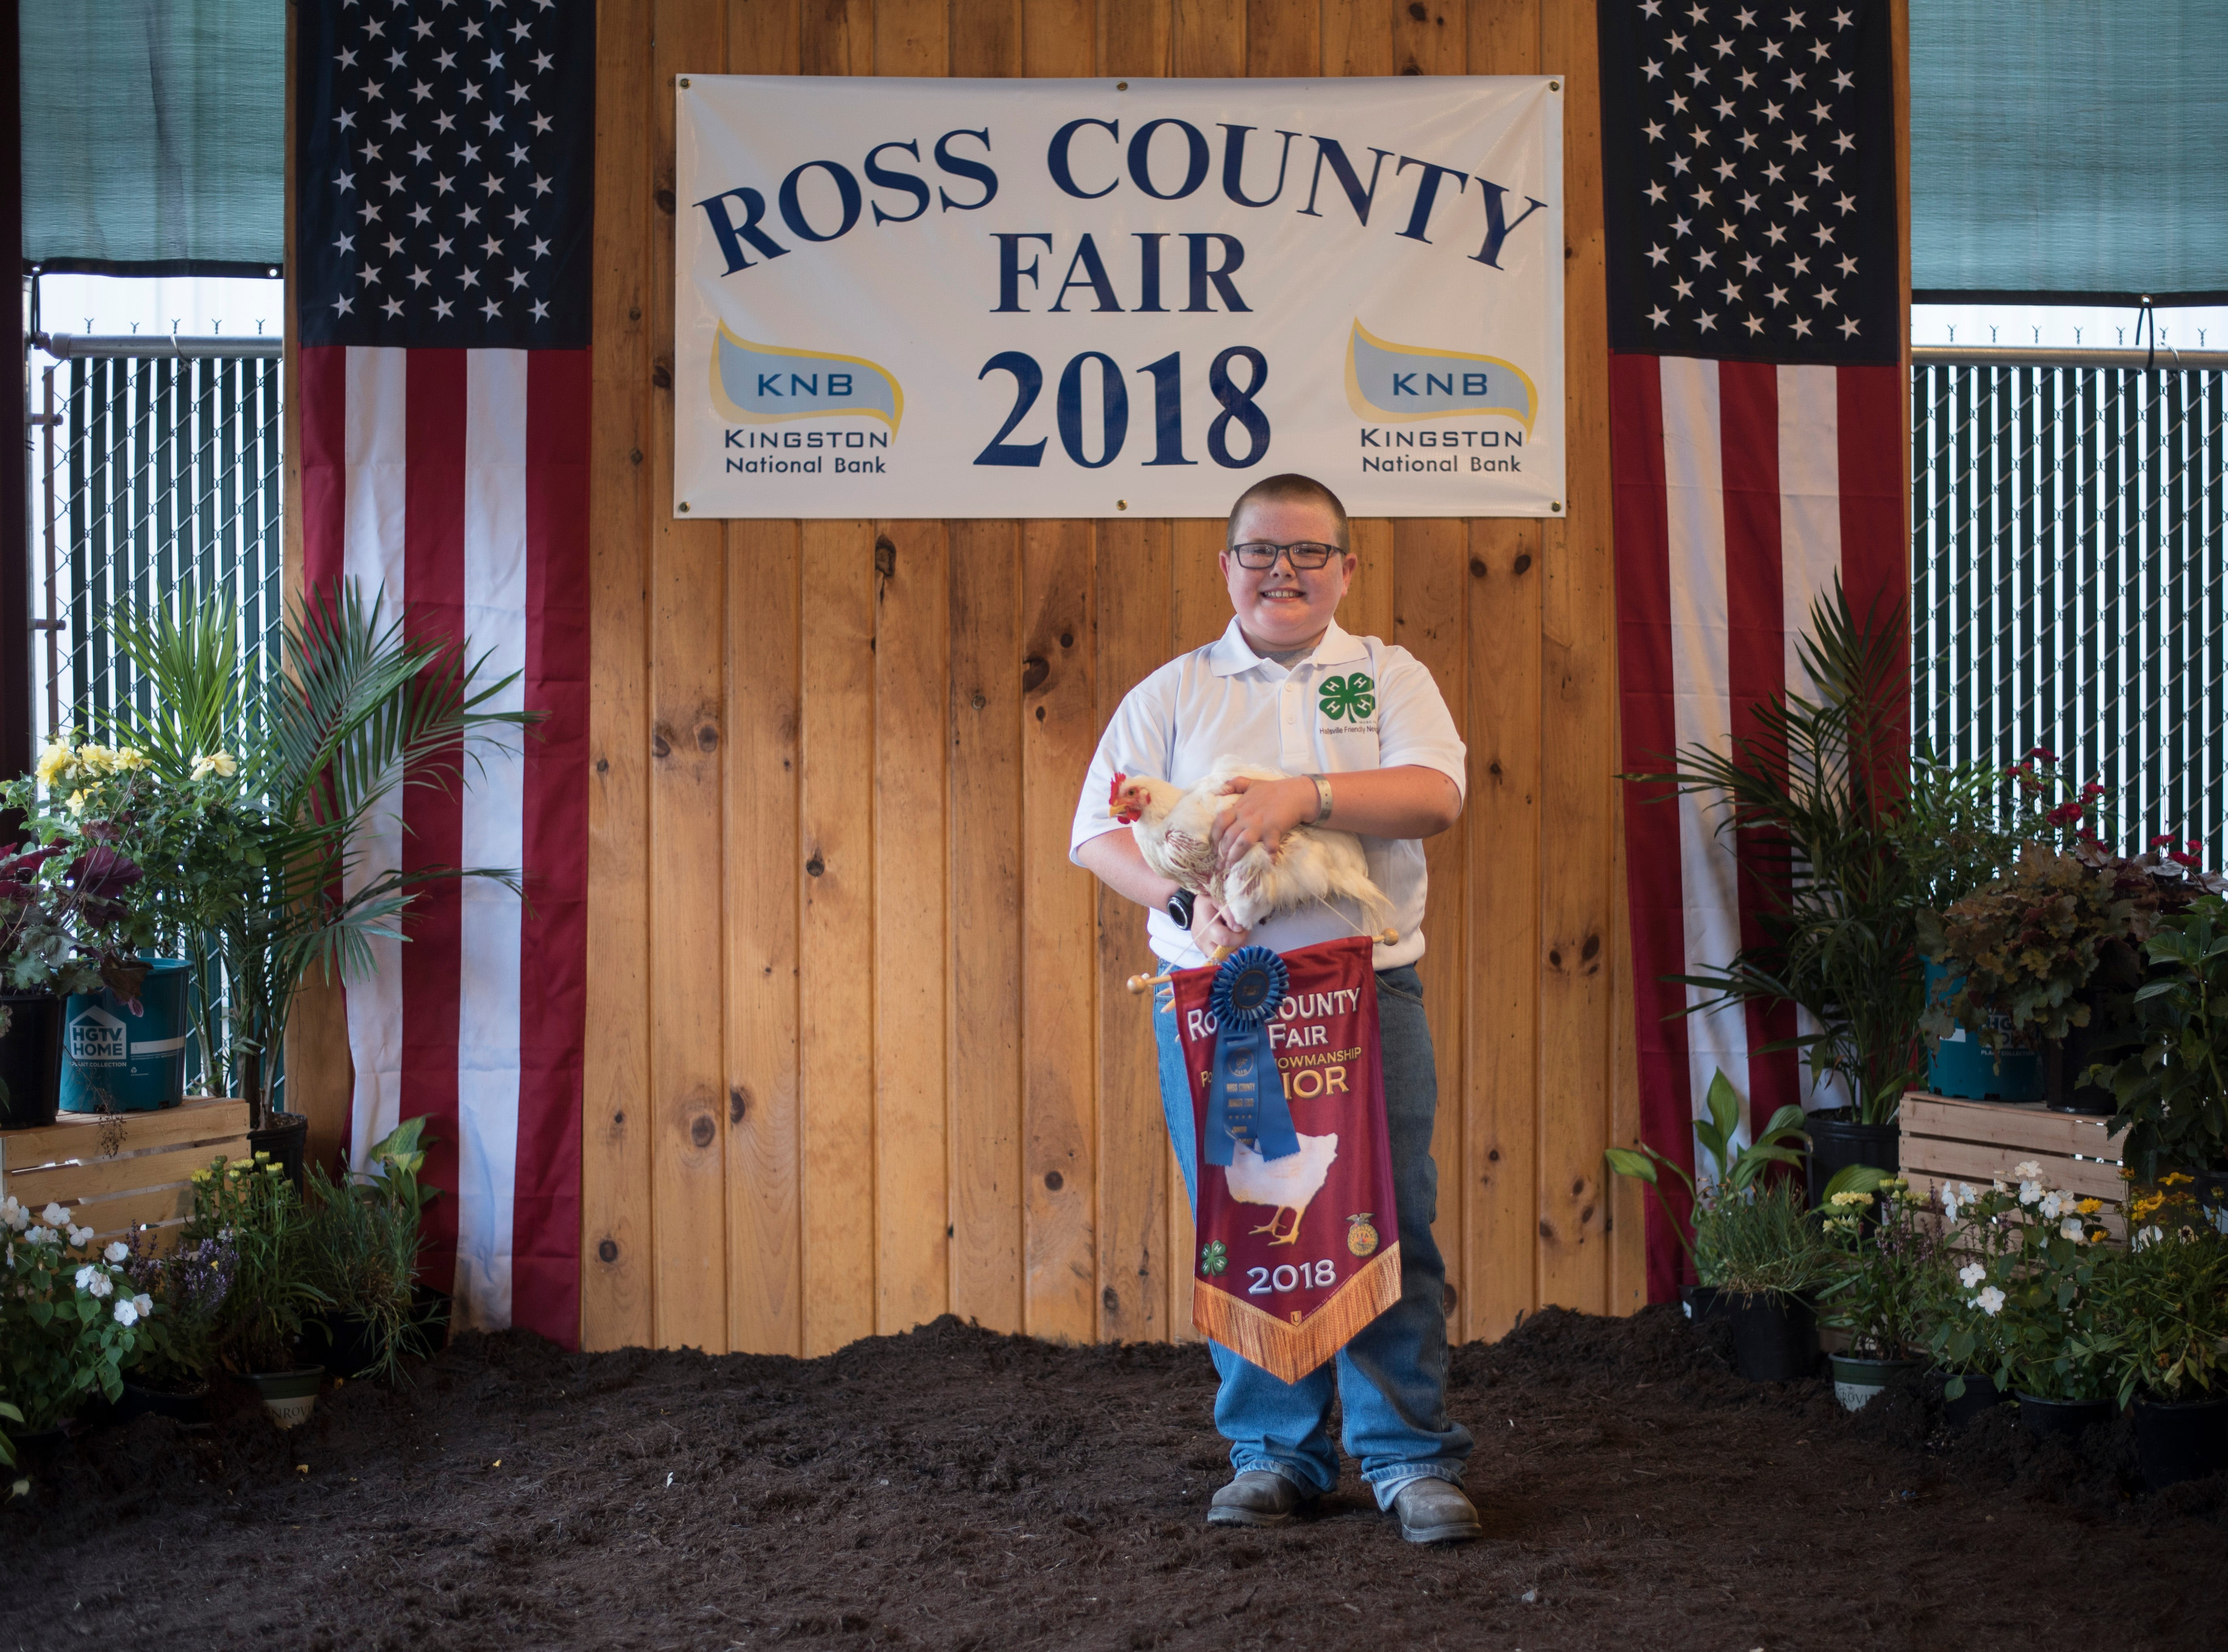 Highlights and portraits of the of the 2018 Jr. Fair Poultry Production and Fancy Poultry judging and showmanship contest. Will Borland, 11, poses after receiving Poultry Showman Junior at the 2018 Ross County Fair on Monday, August 6.